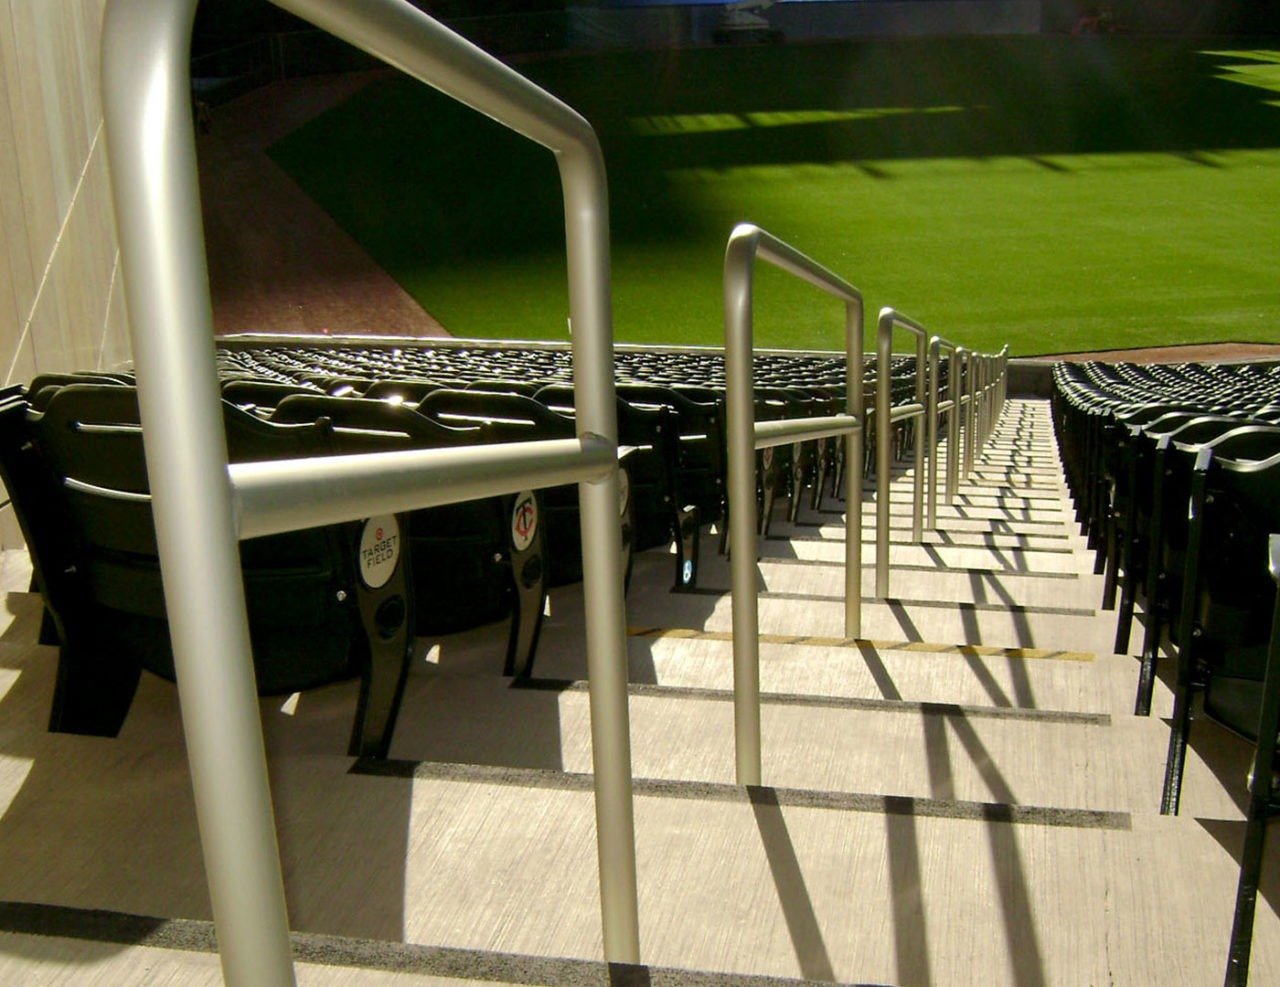 Ballpark showcases aluminum Griprail aisle railing